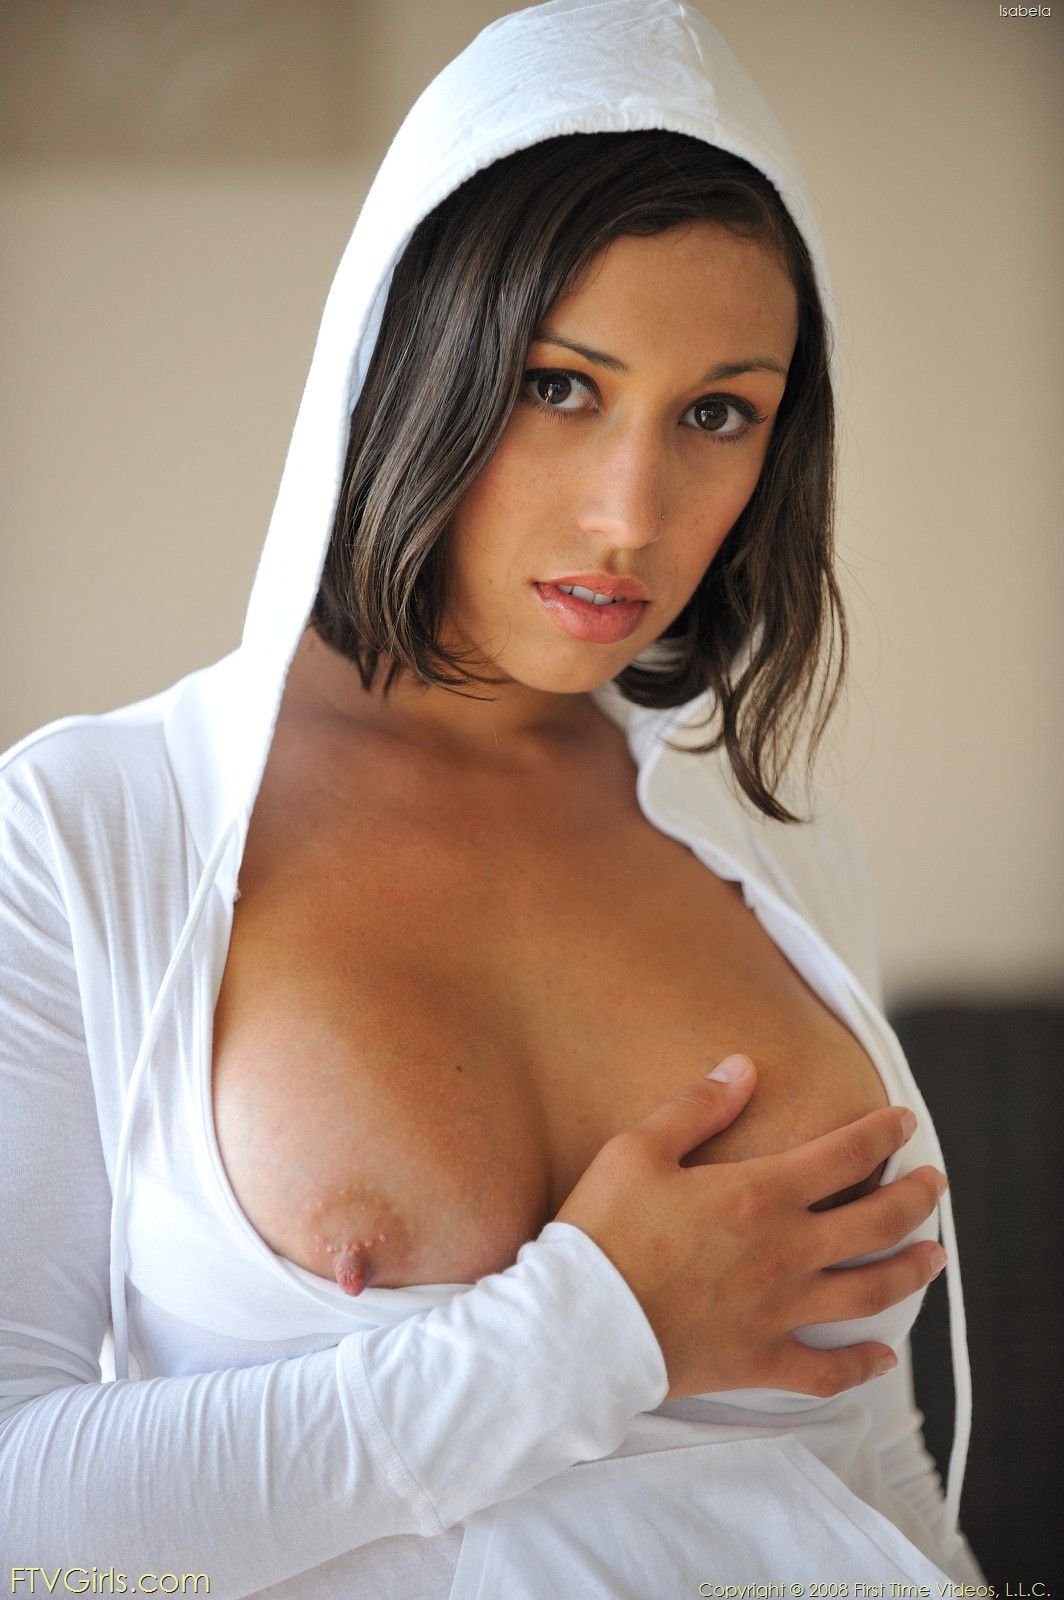 Nude girls erected boobs — photo 12